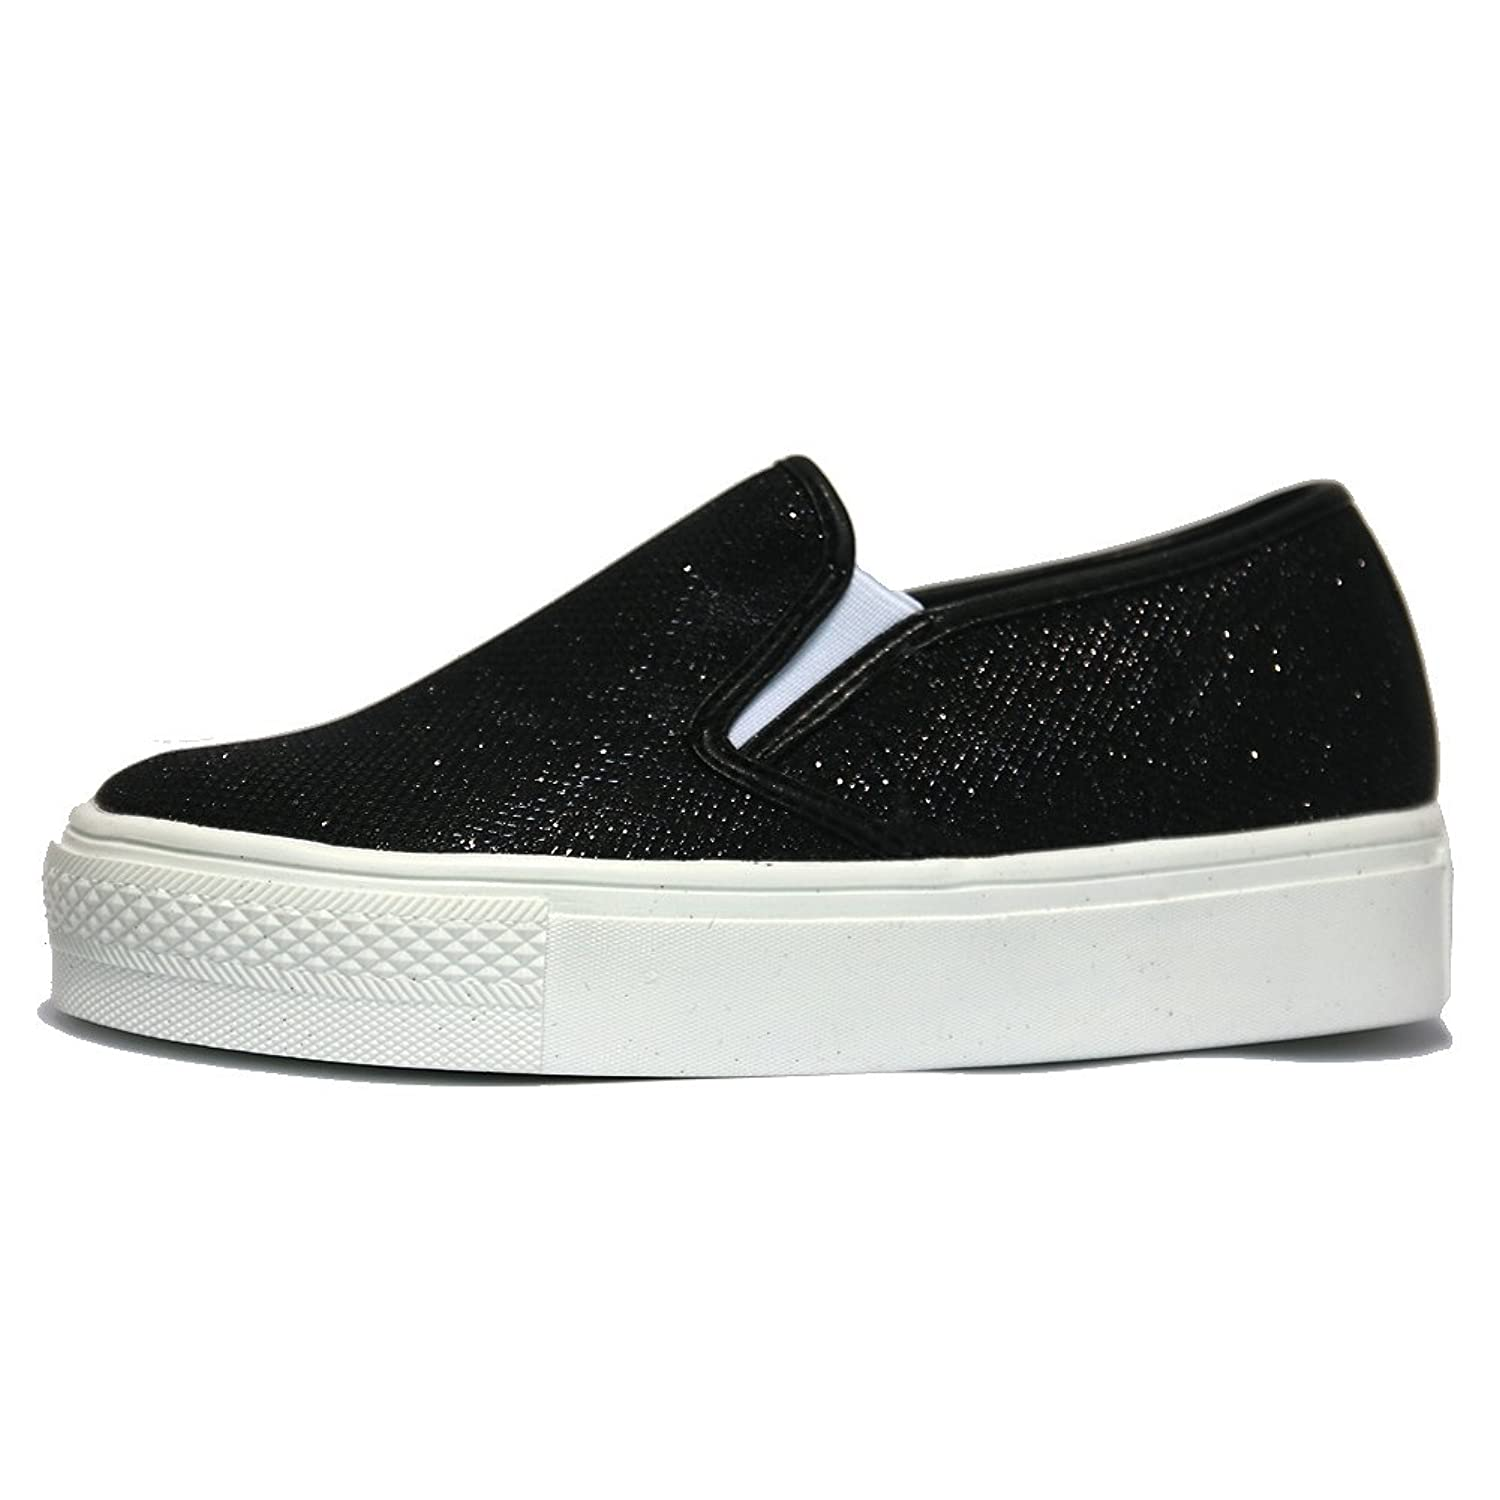 Womens Shiny Slip On Platform Sneakers